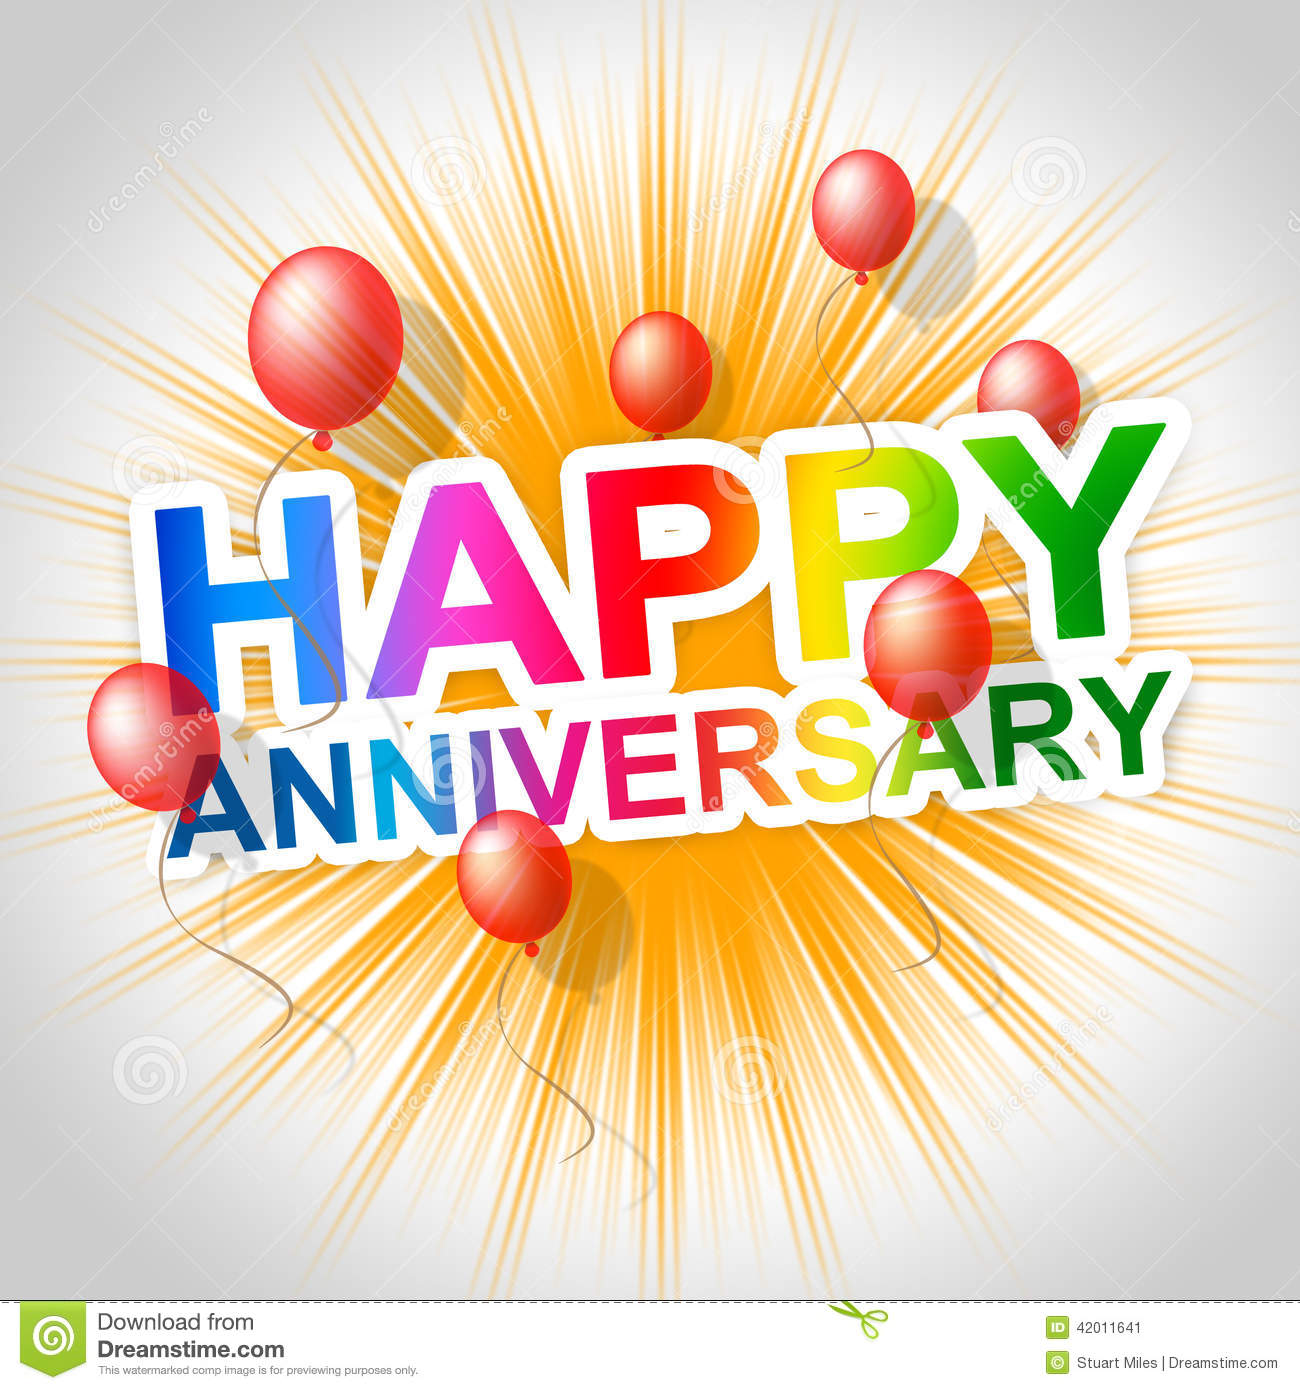 Happy anniversary indicates message parties and